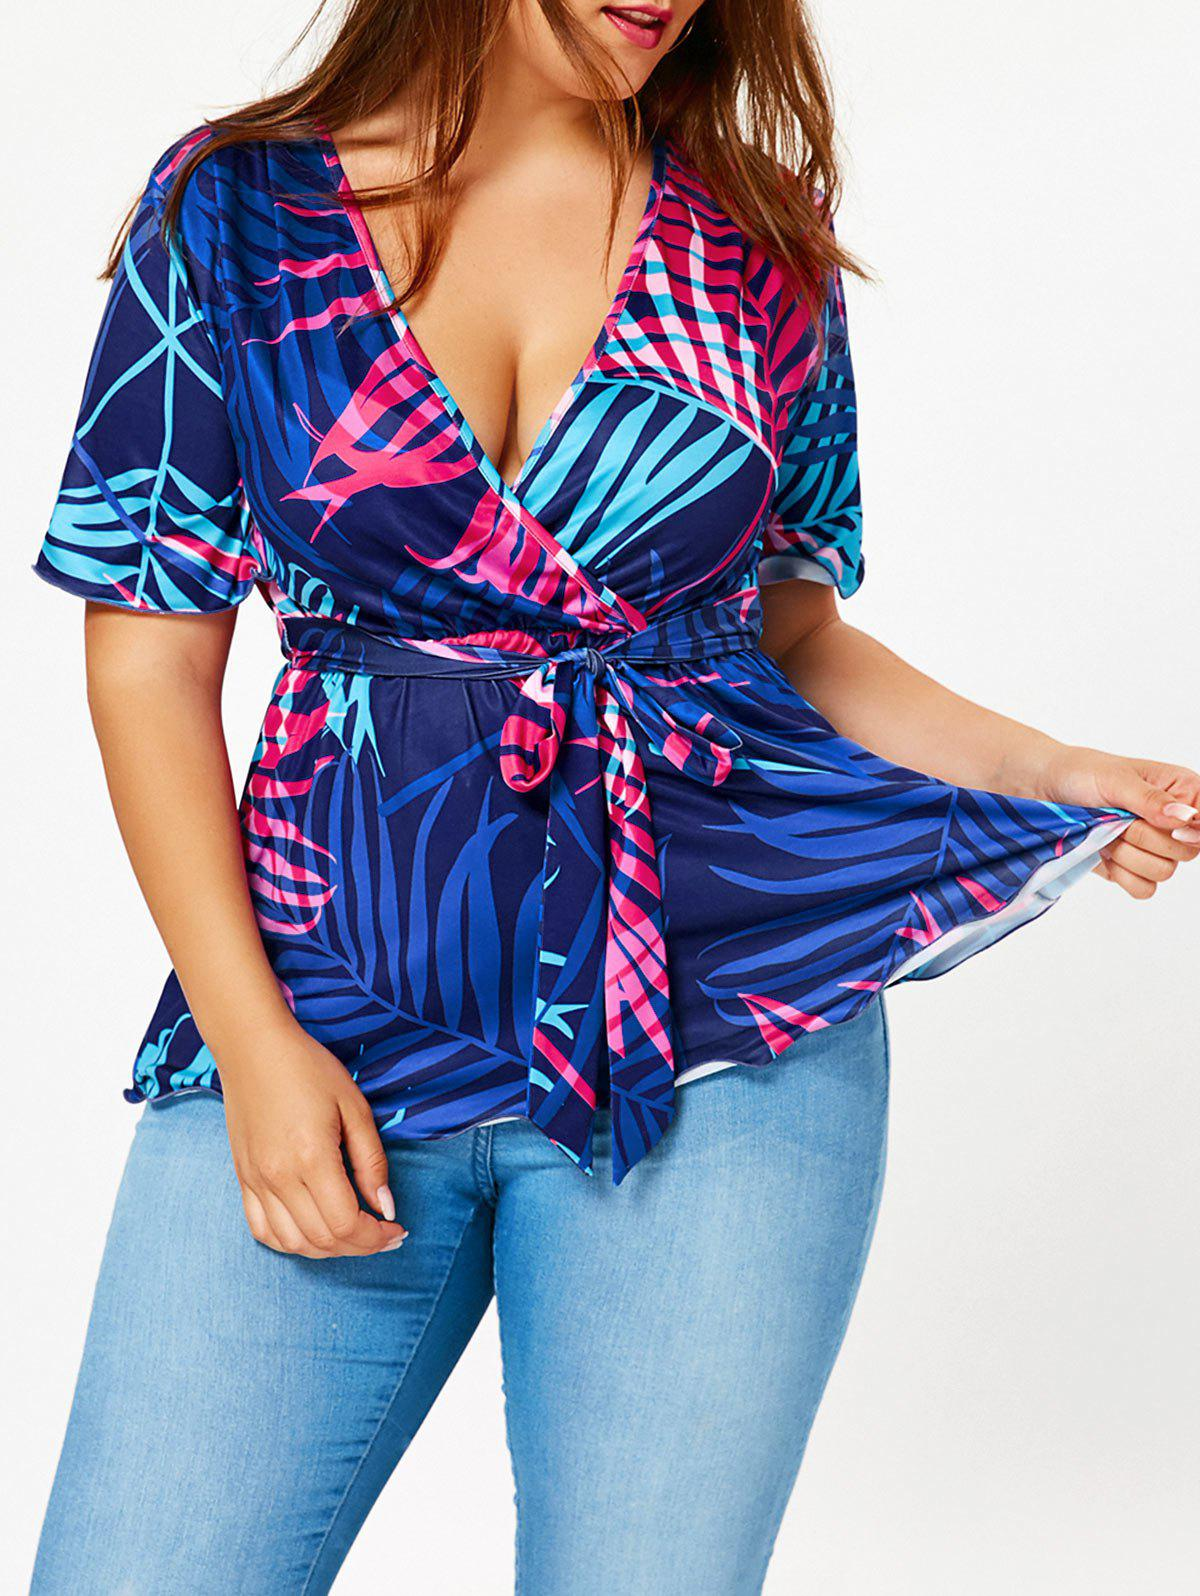 Tropical Print Plus Size Belted Surplice BlouseWOMEN<br><br>Size: 2XL; Color: COLORMIX; Material: Polyester,Spandex; Shirt Length: Regular; Sleeve Length: Half; Collar: V-Neck; Style: Fashion; Season: Summer; Pattern Type: Plant,Print; Placement Print: No; Elasticity: Elastic; Weight: 0.3000kg; Package Contents: 1 x Blouse;